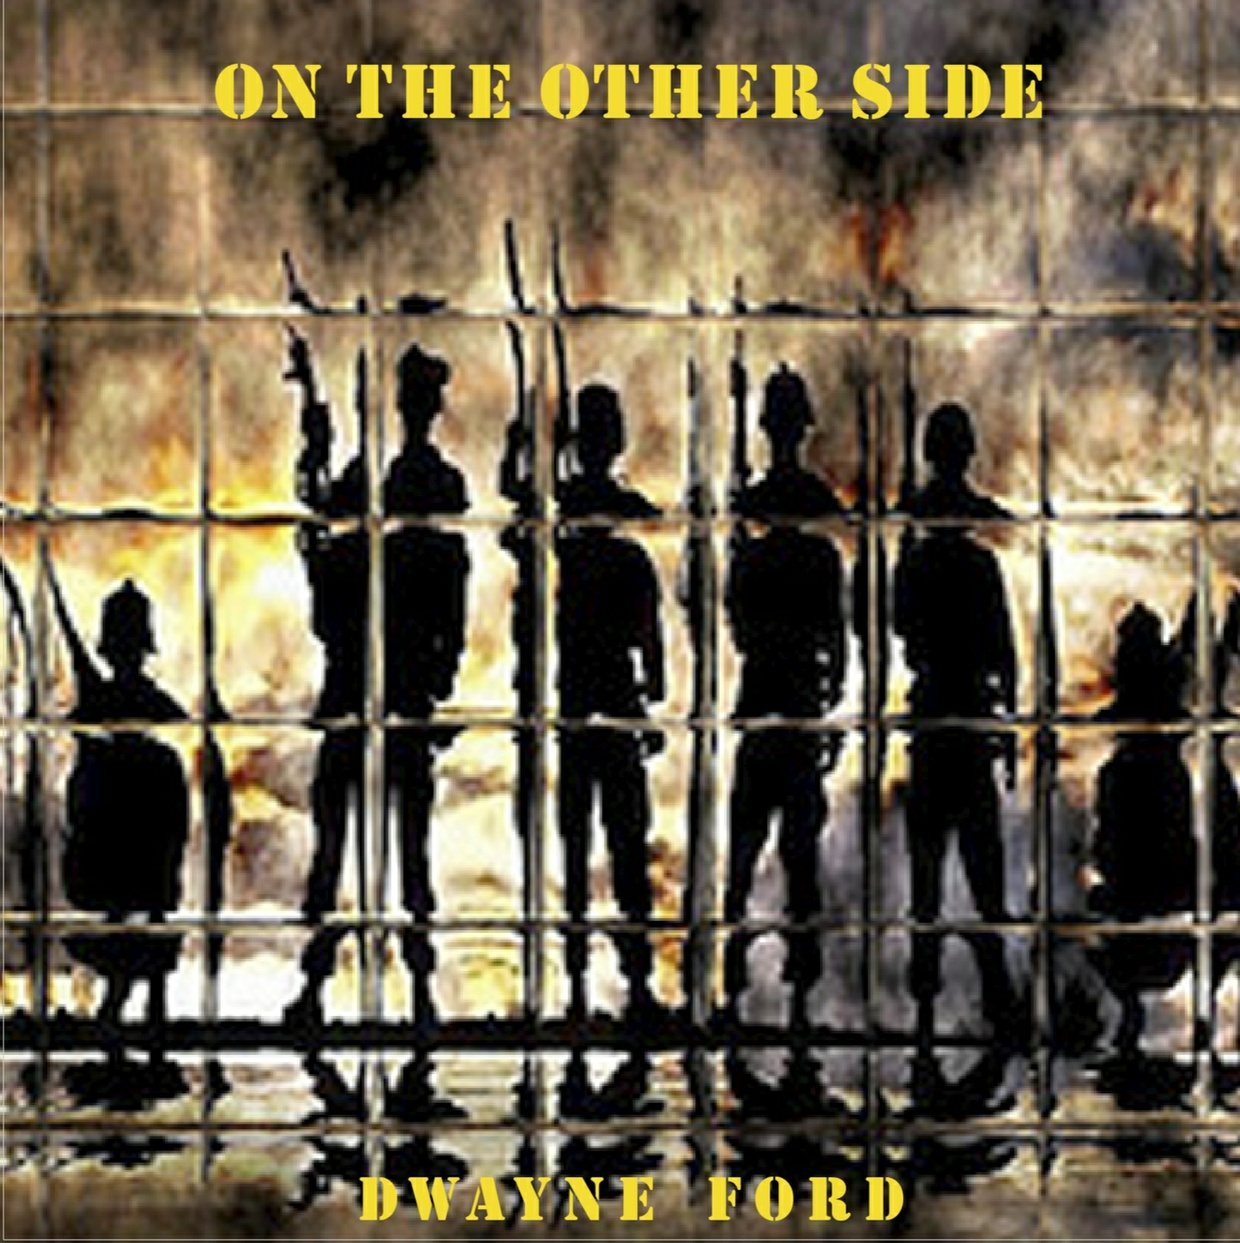 On The Other Side Album CD Quality (44.1 Khz WAV)